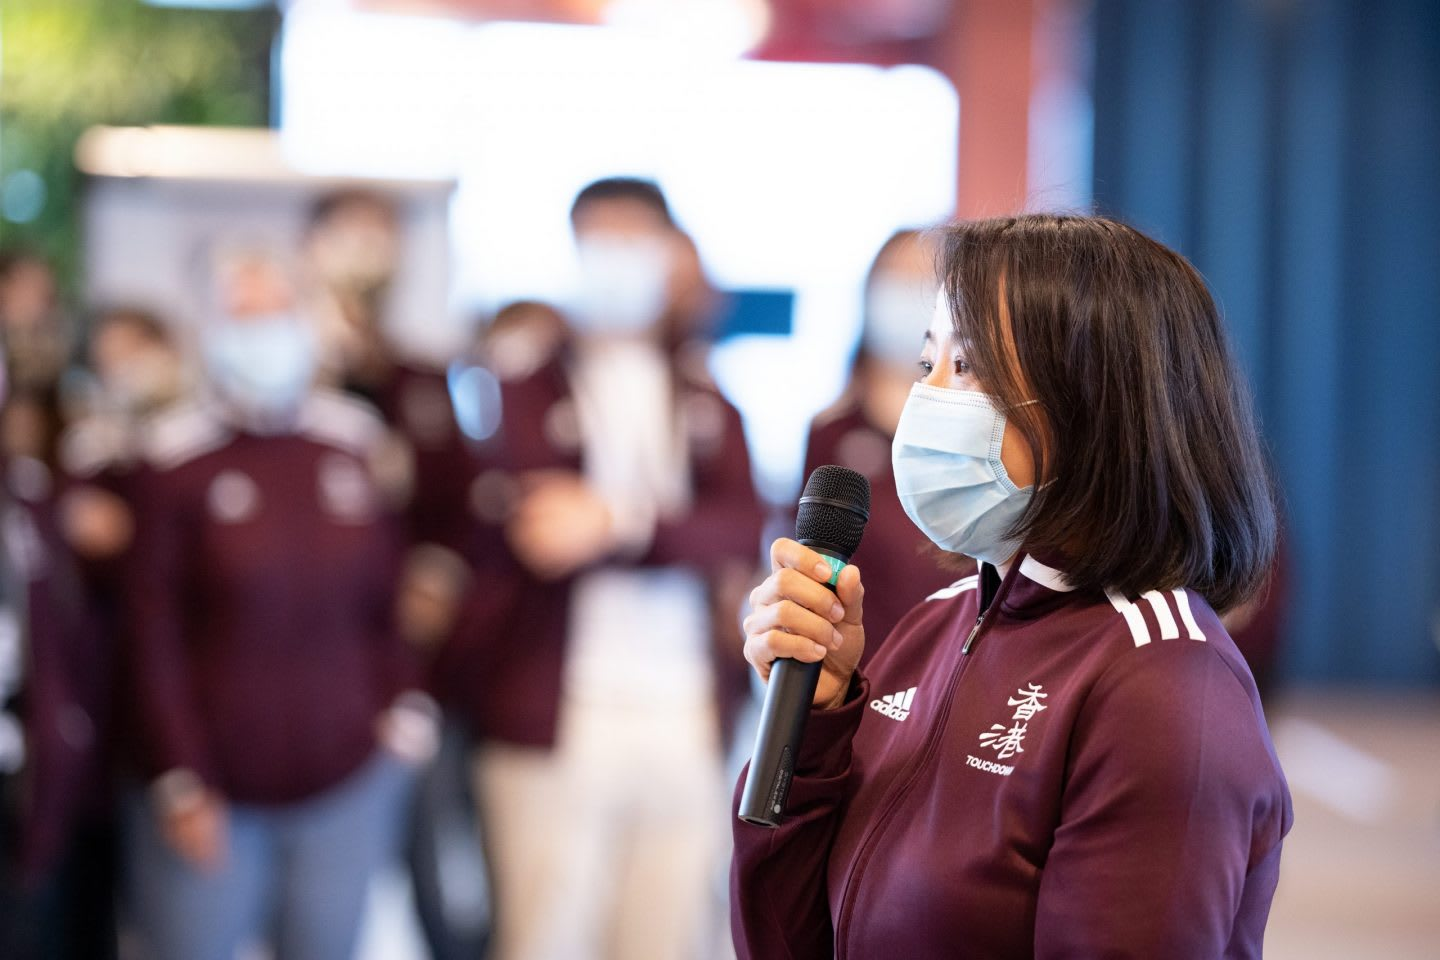 Woman wearing a medical mask holding a microphone speaking in front of a crowd, Hoa Ly, adidas, employee, Sourcing, Asia, leadership, leaders, women